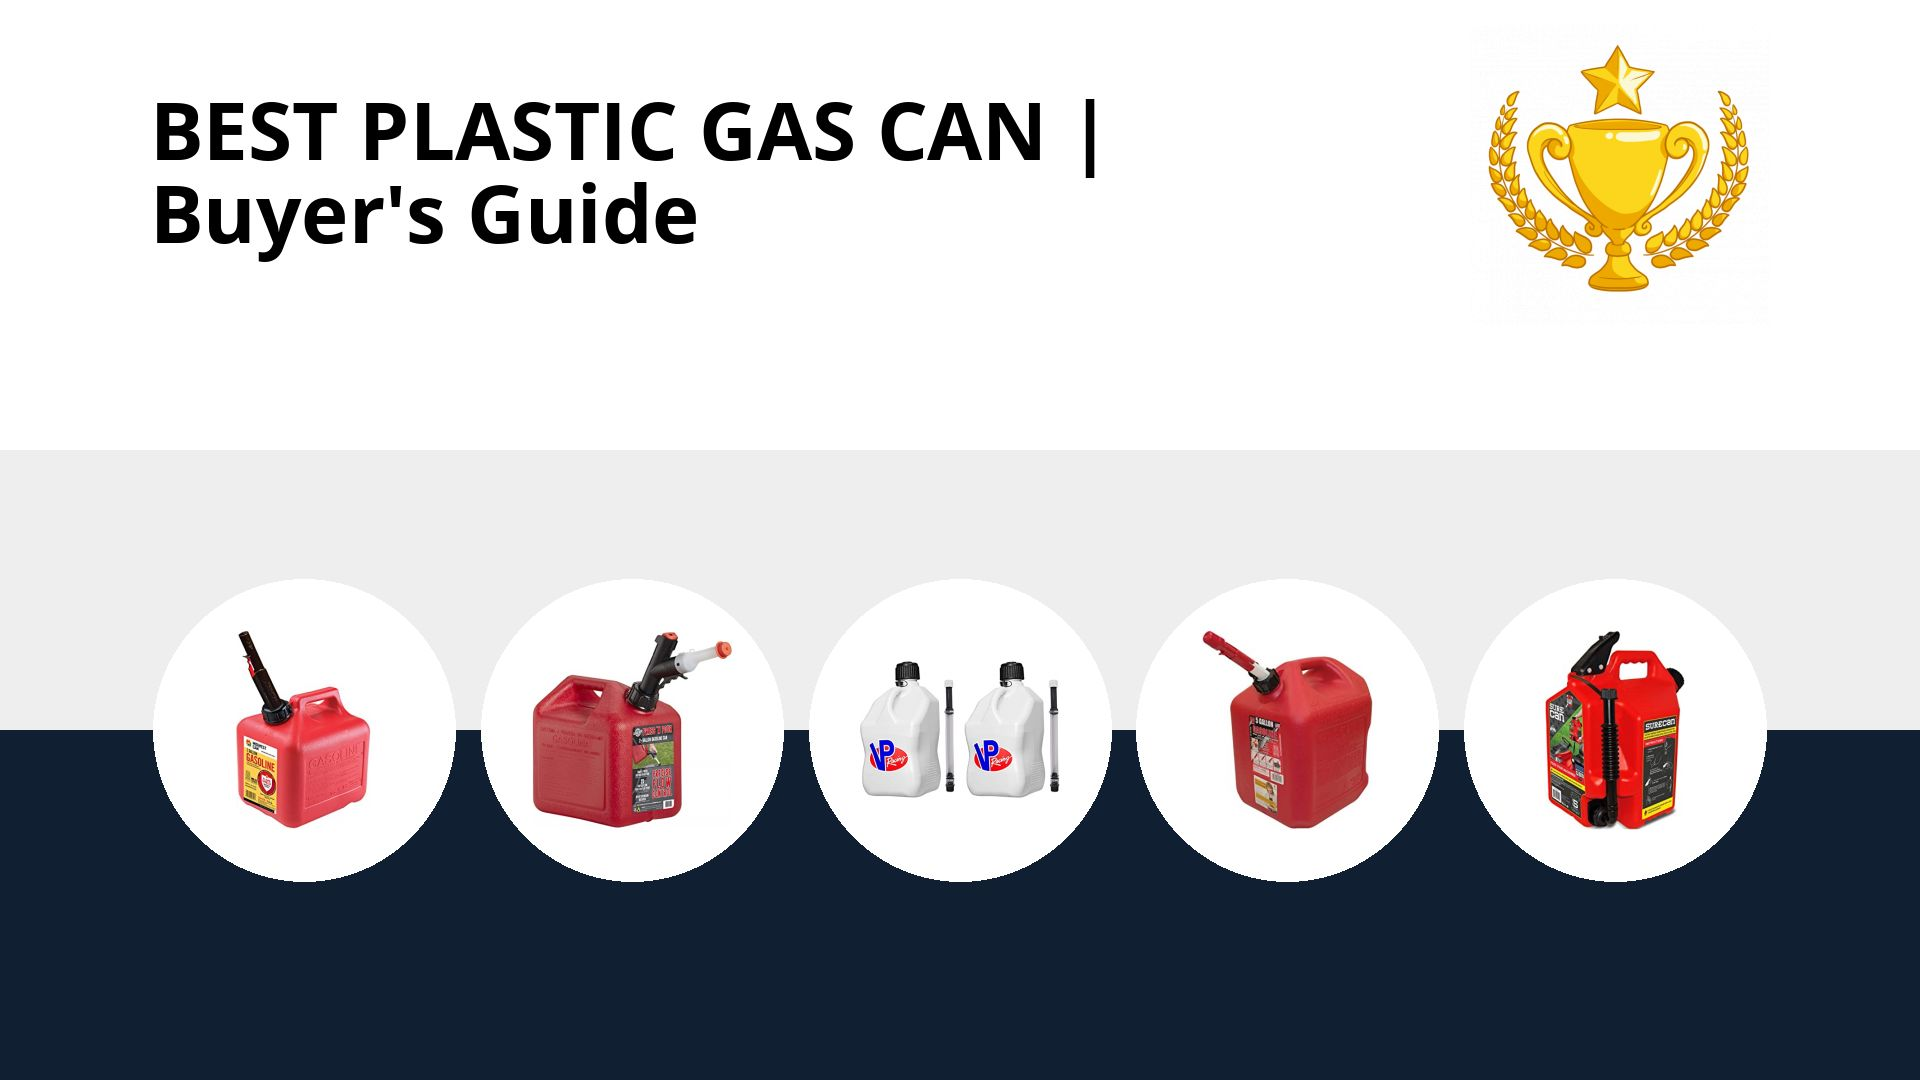 Best Plastic Gas Can: image